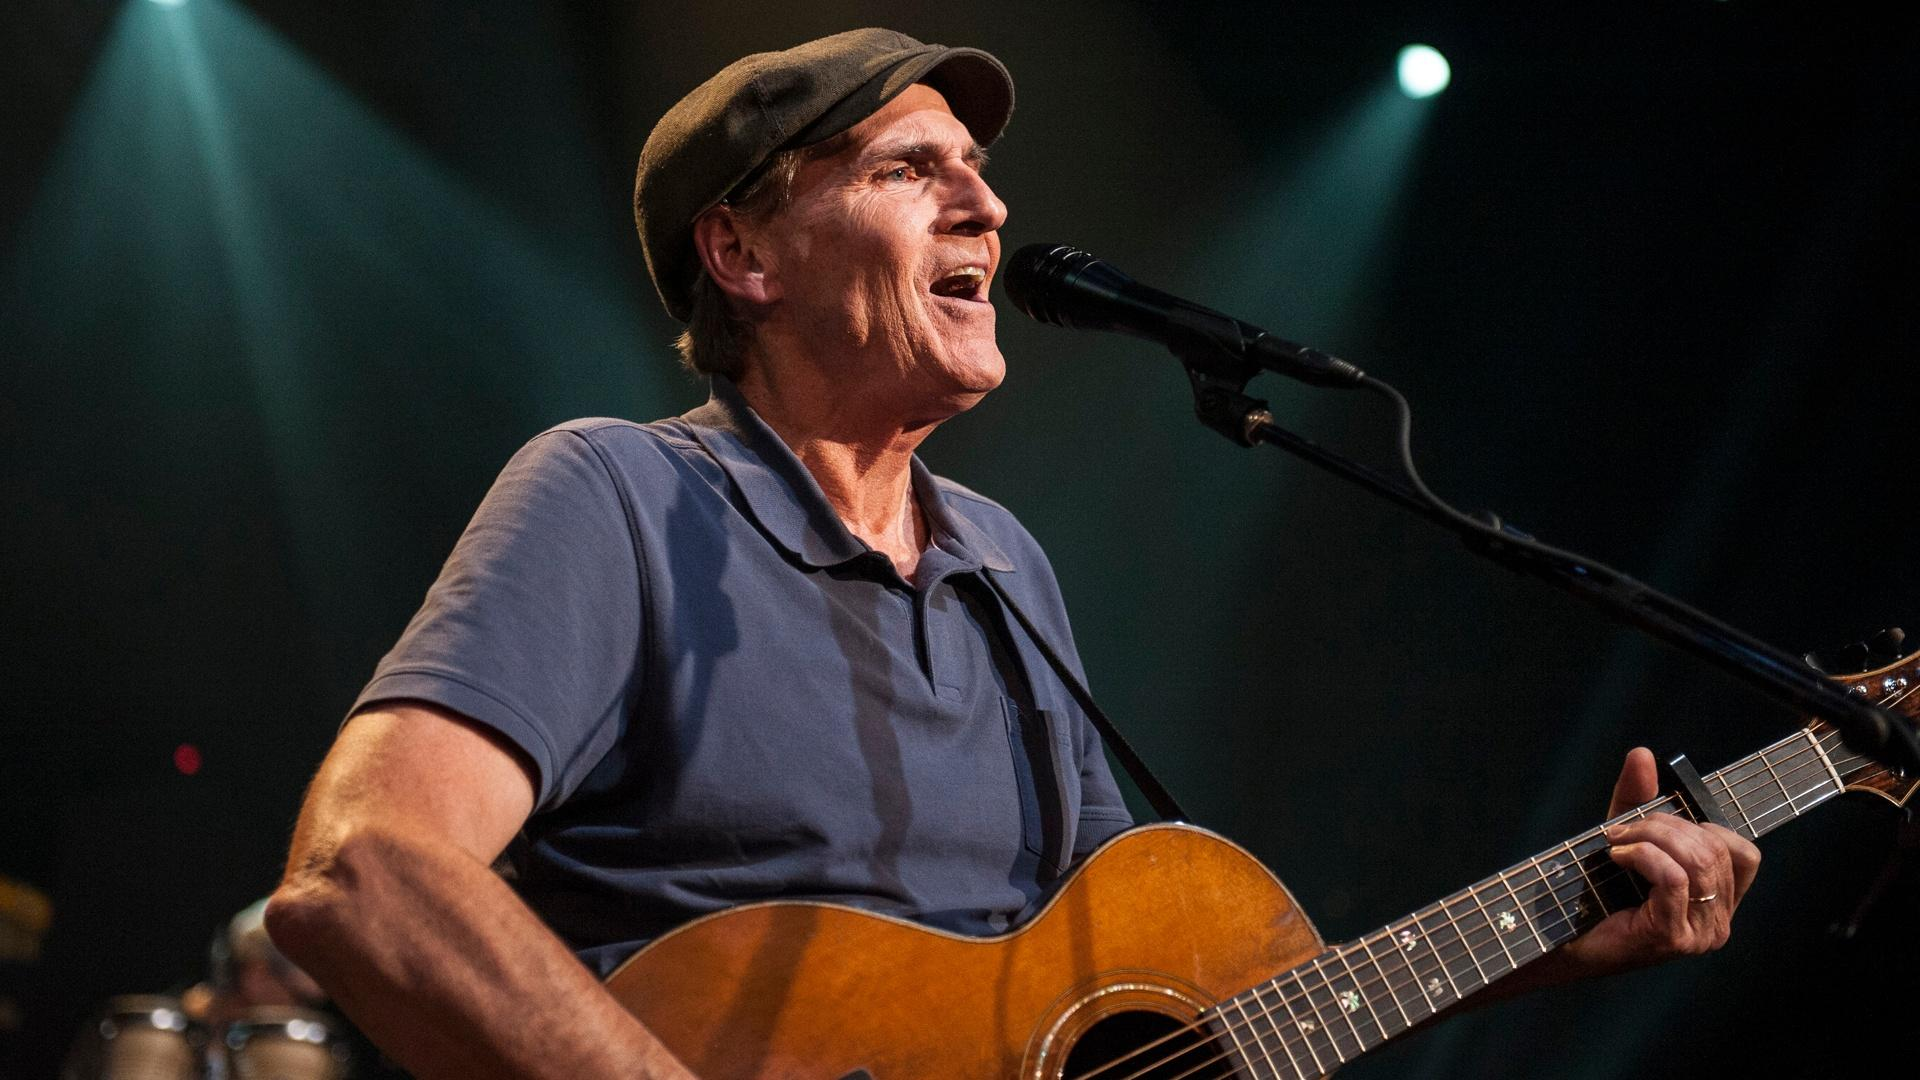 Watch full episodes online of austin city limits on pbs james taylor